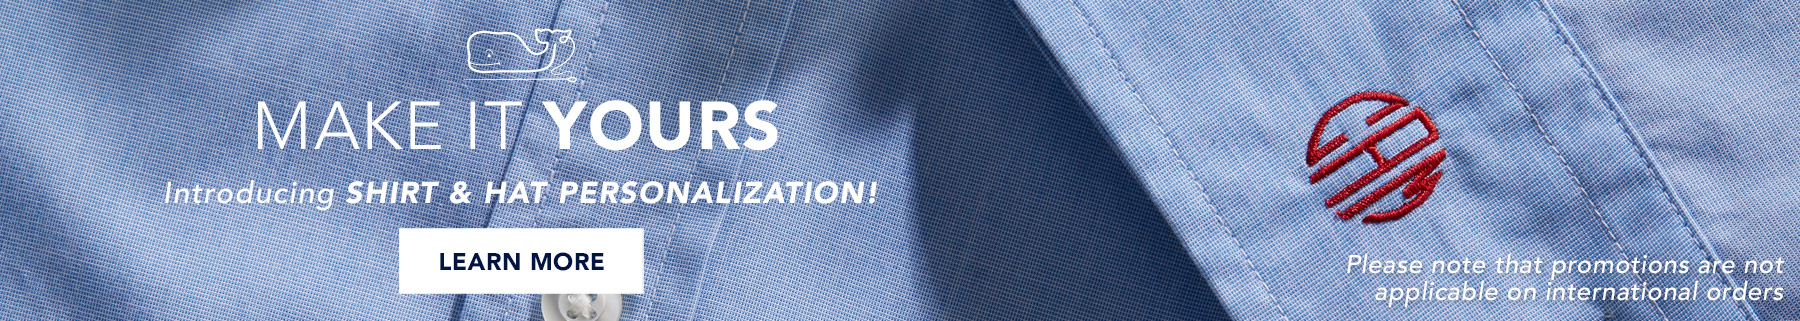 Make your mark. Introducing shirt & hat personalization. Learn more.